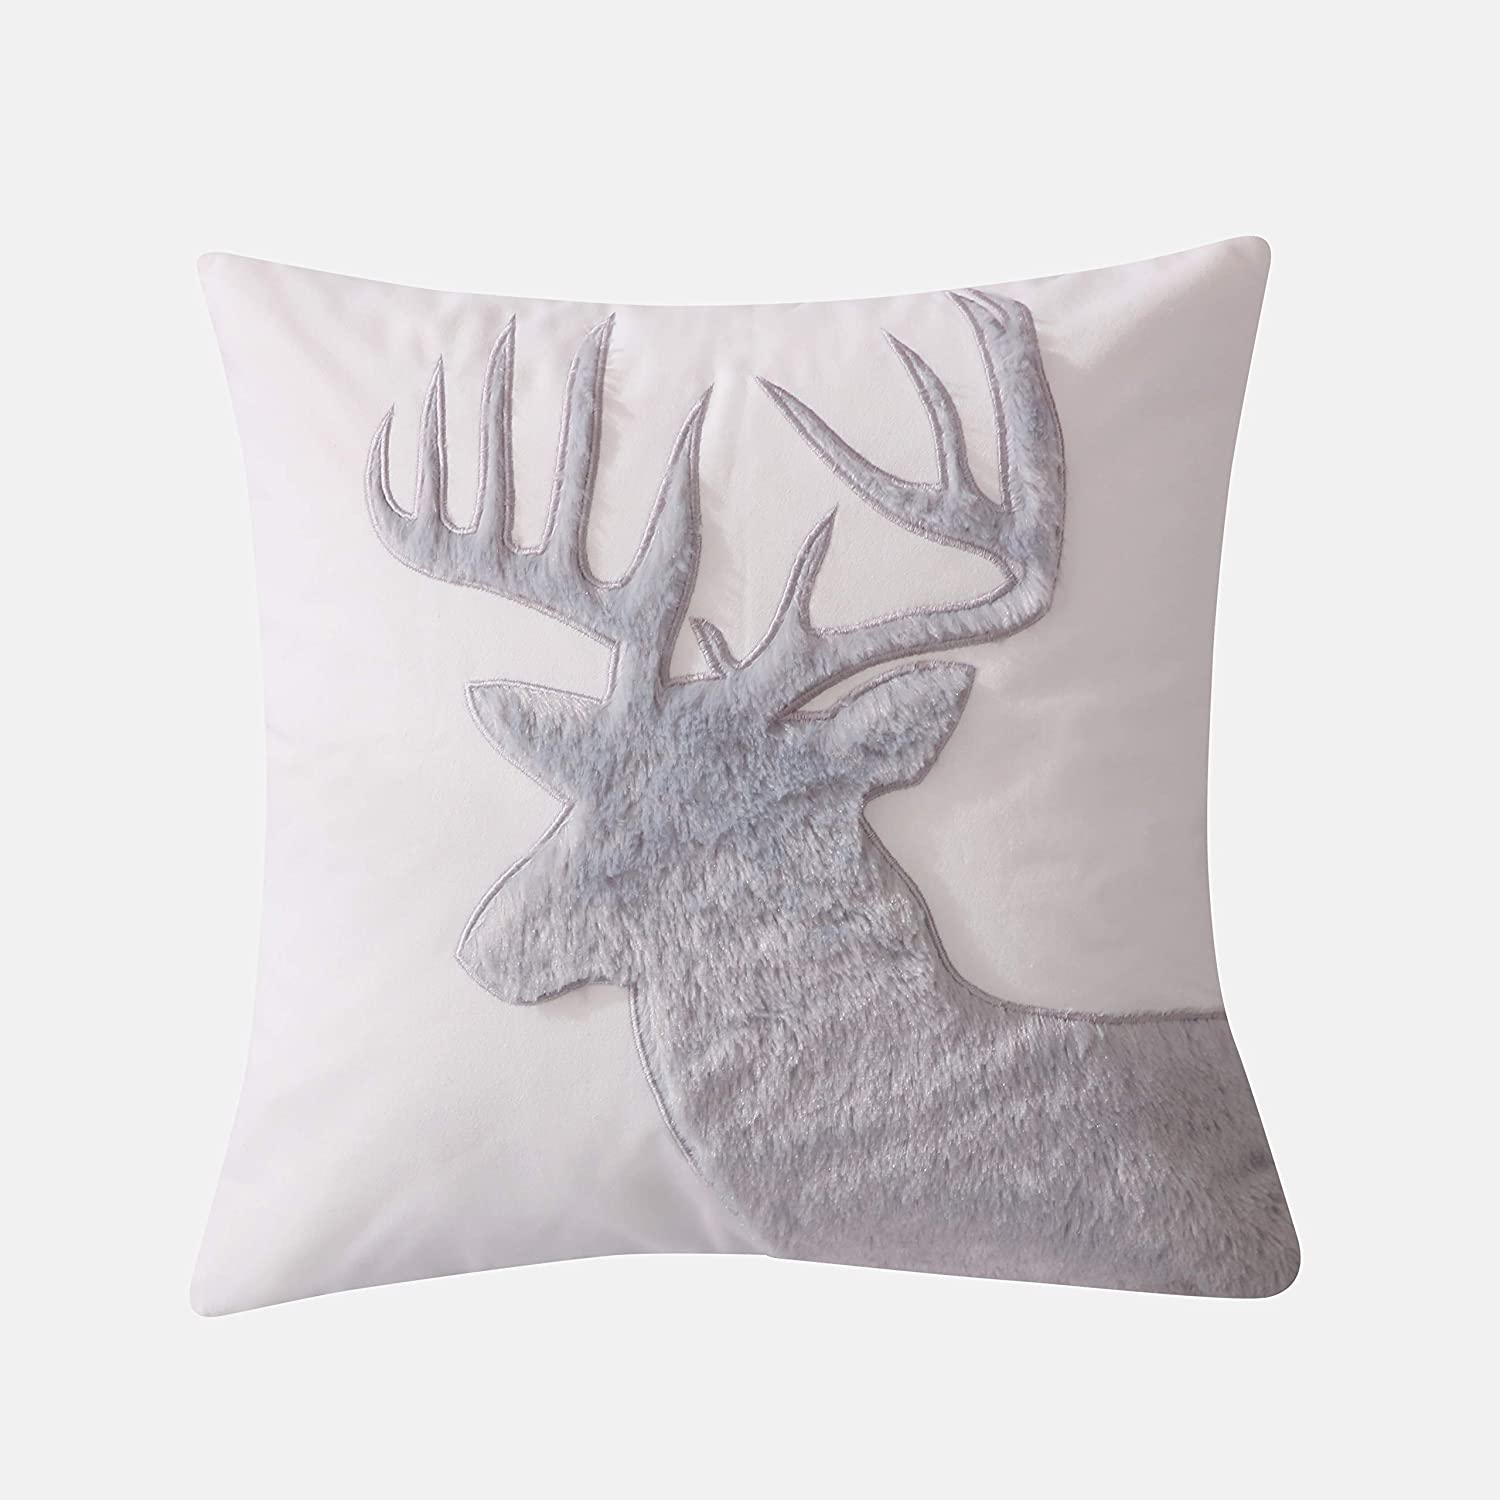 Levtex Home - Camden -Decorative Pillow (18X18in.) - Faux Fur Moose - Grey and Cream